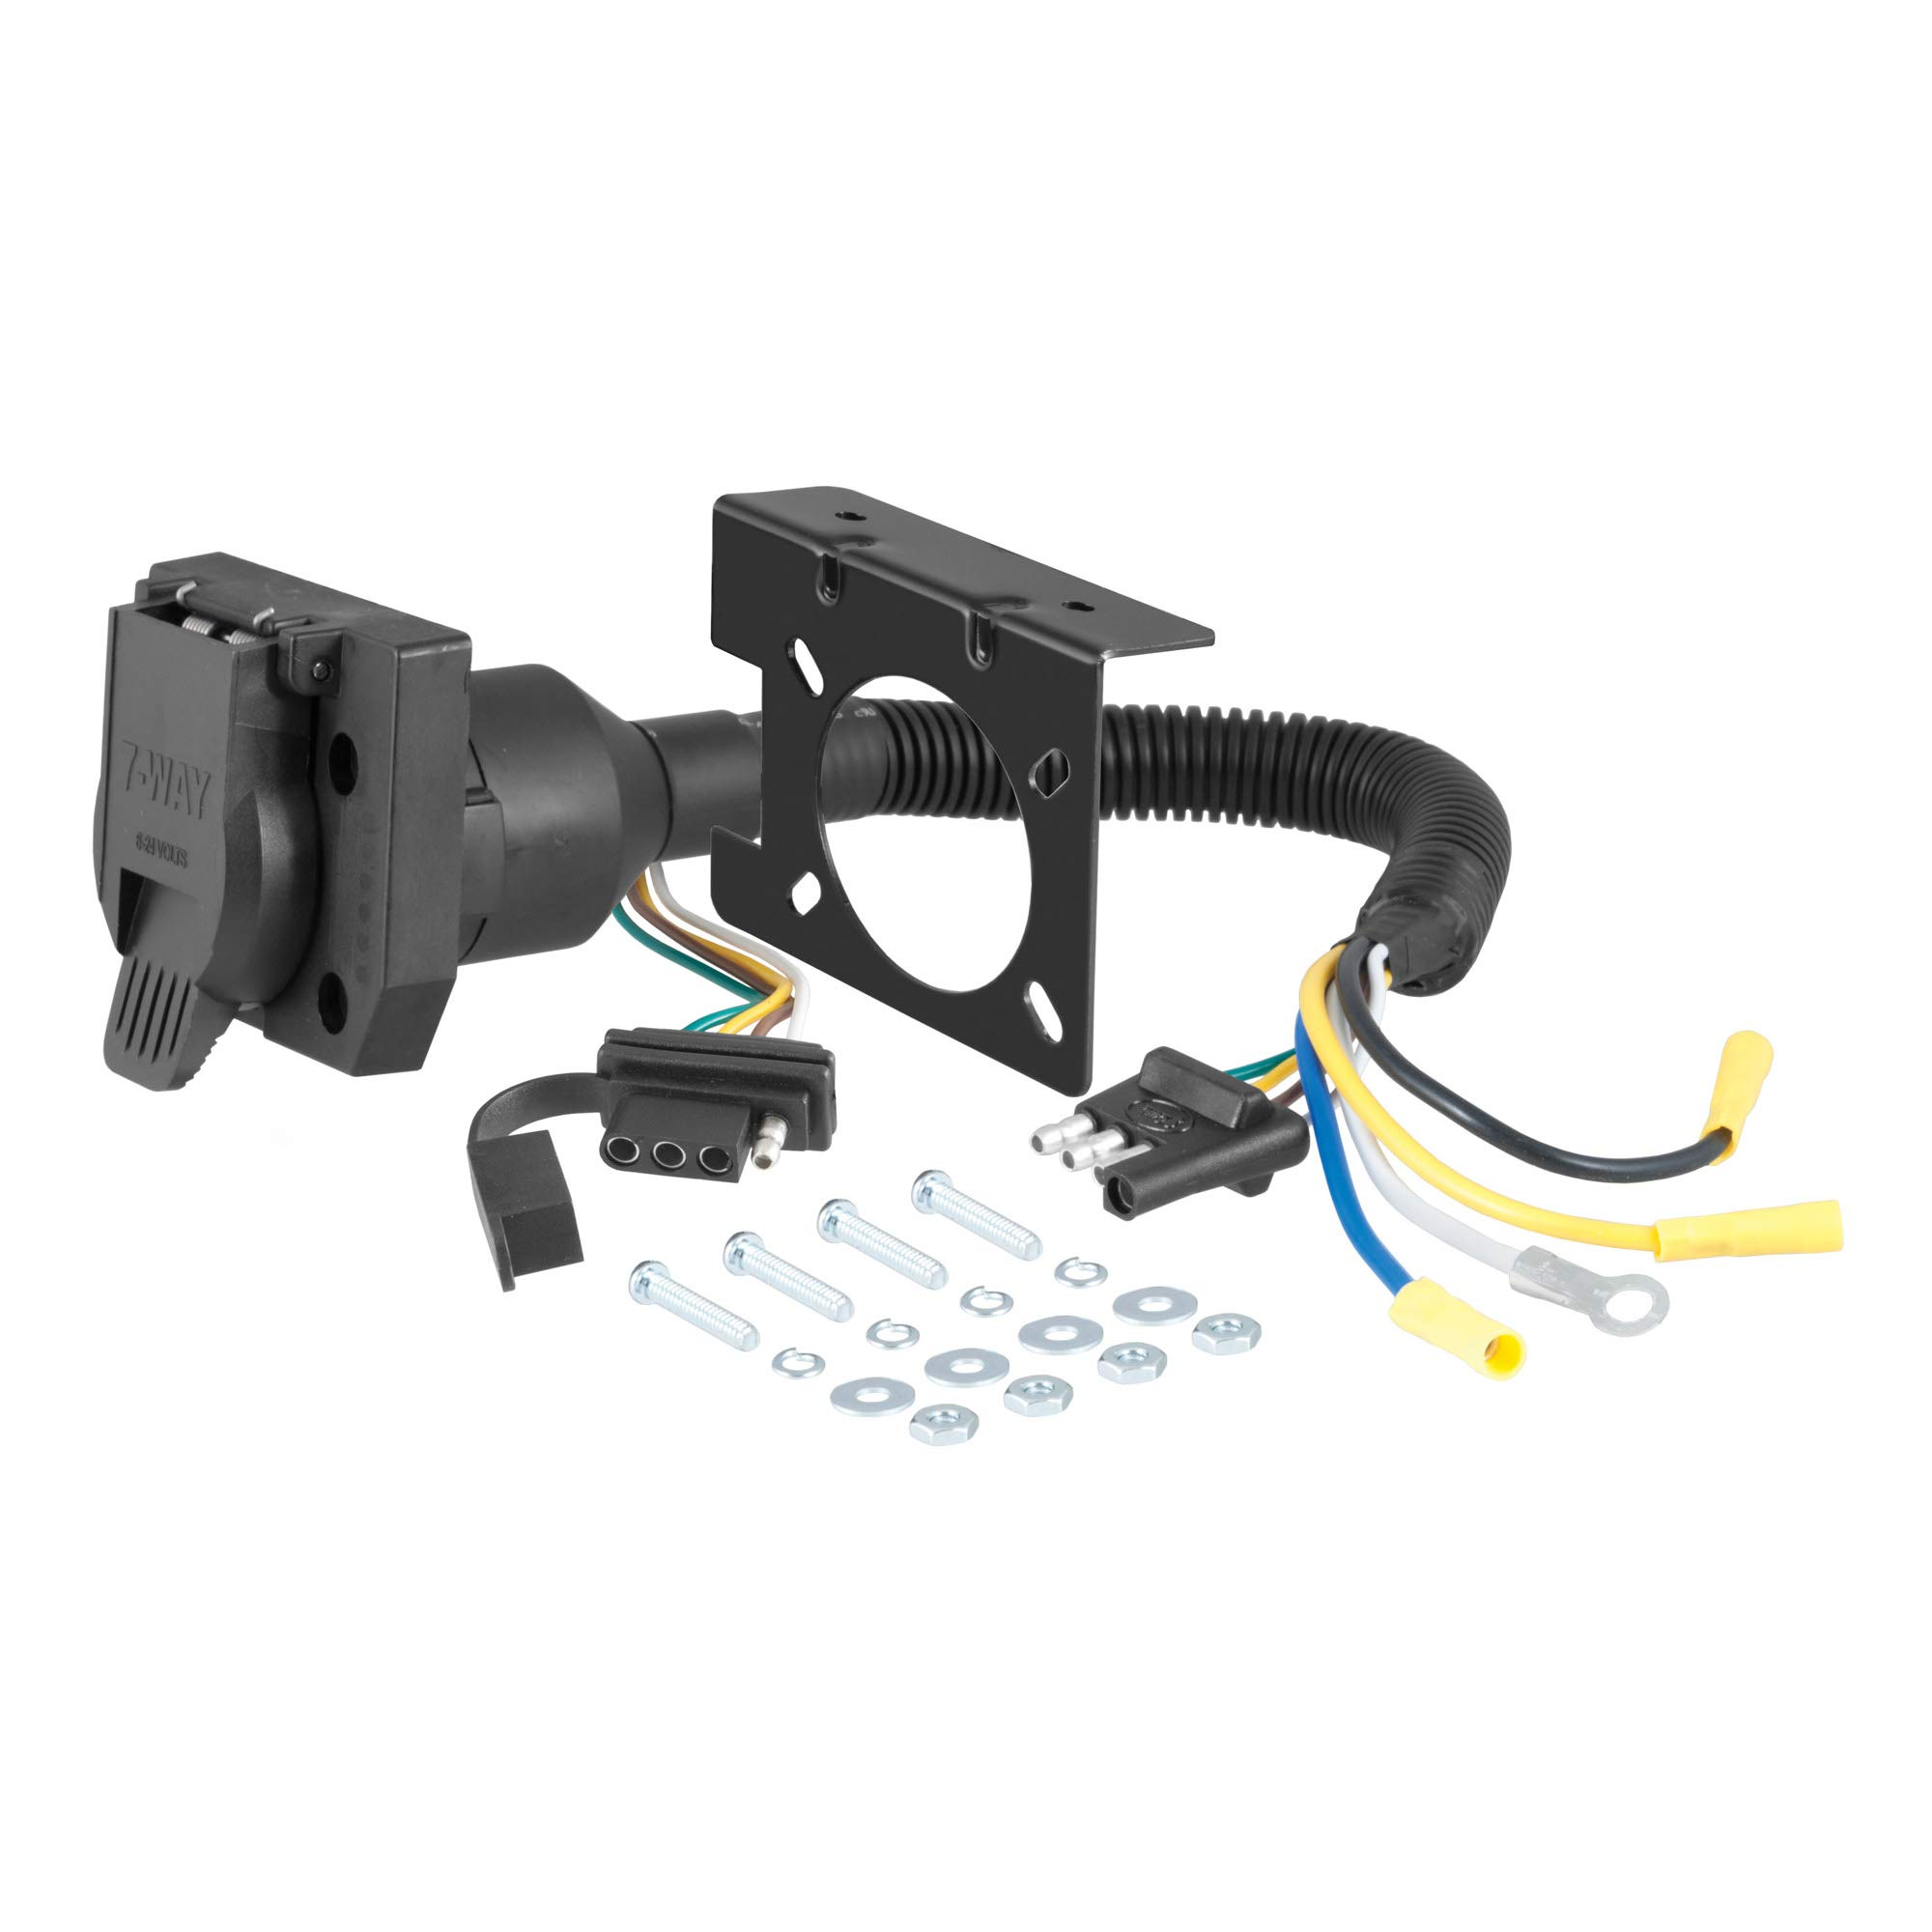 CURT 57672 Dual-Output 4-Way Flat Vehicle-Side to 7-Way RV Blade Trailer Wiring Adapter